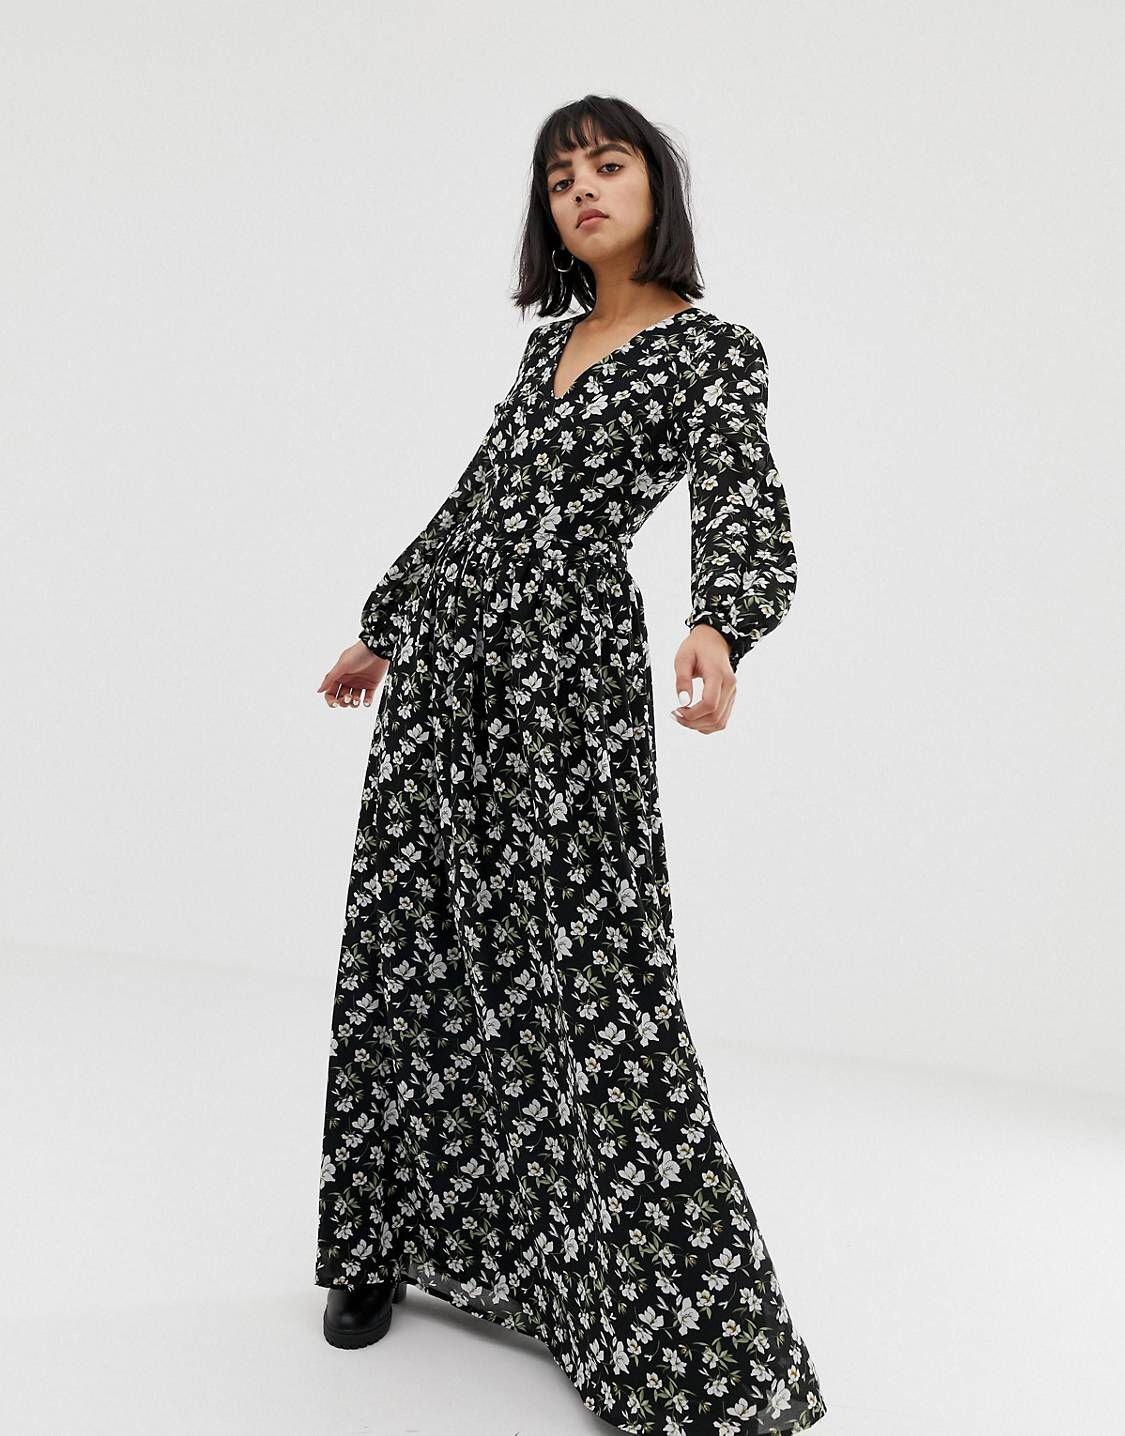 e8cec49c7 Just when I thought I didn't need something new from ASOS, I kinda do